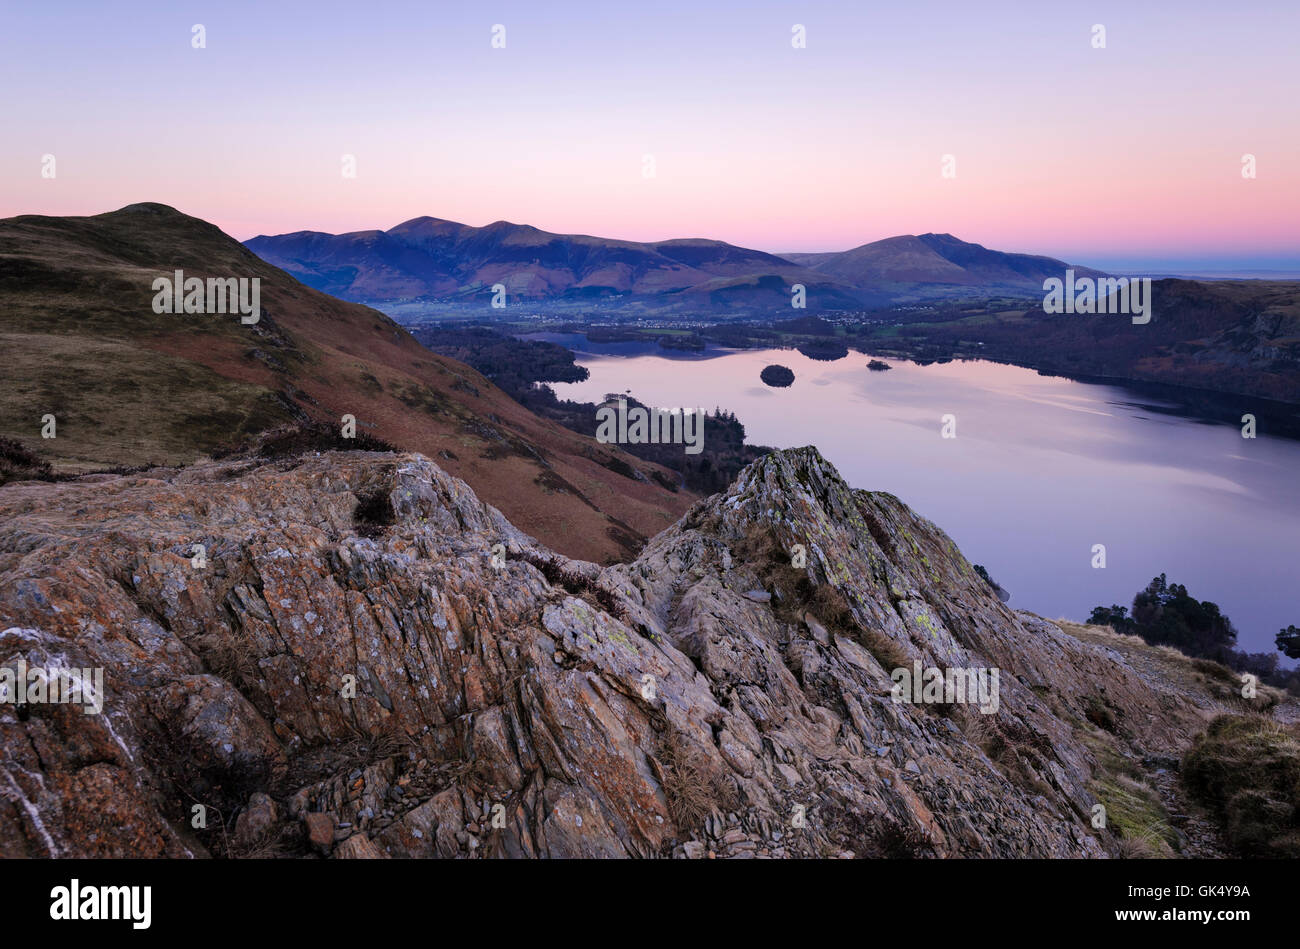 Evening View of Derwent Water from Catbells - Stock Image